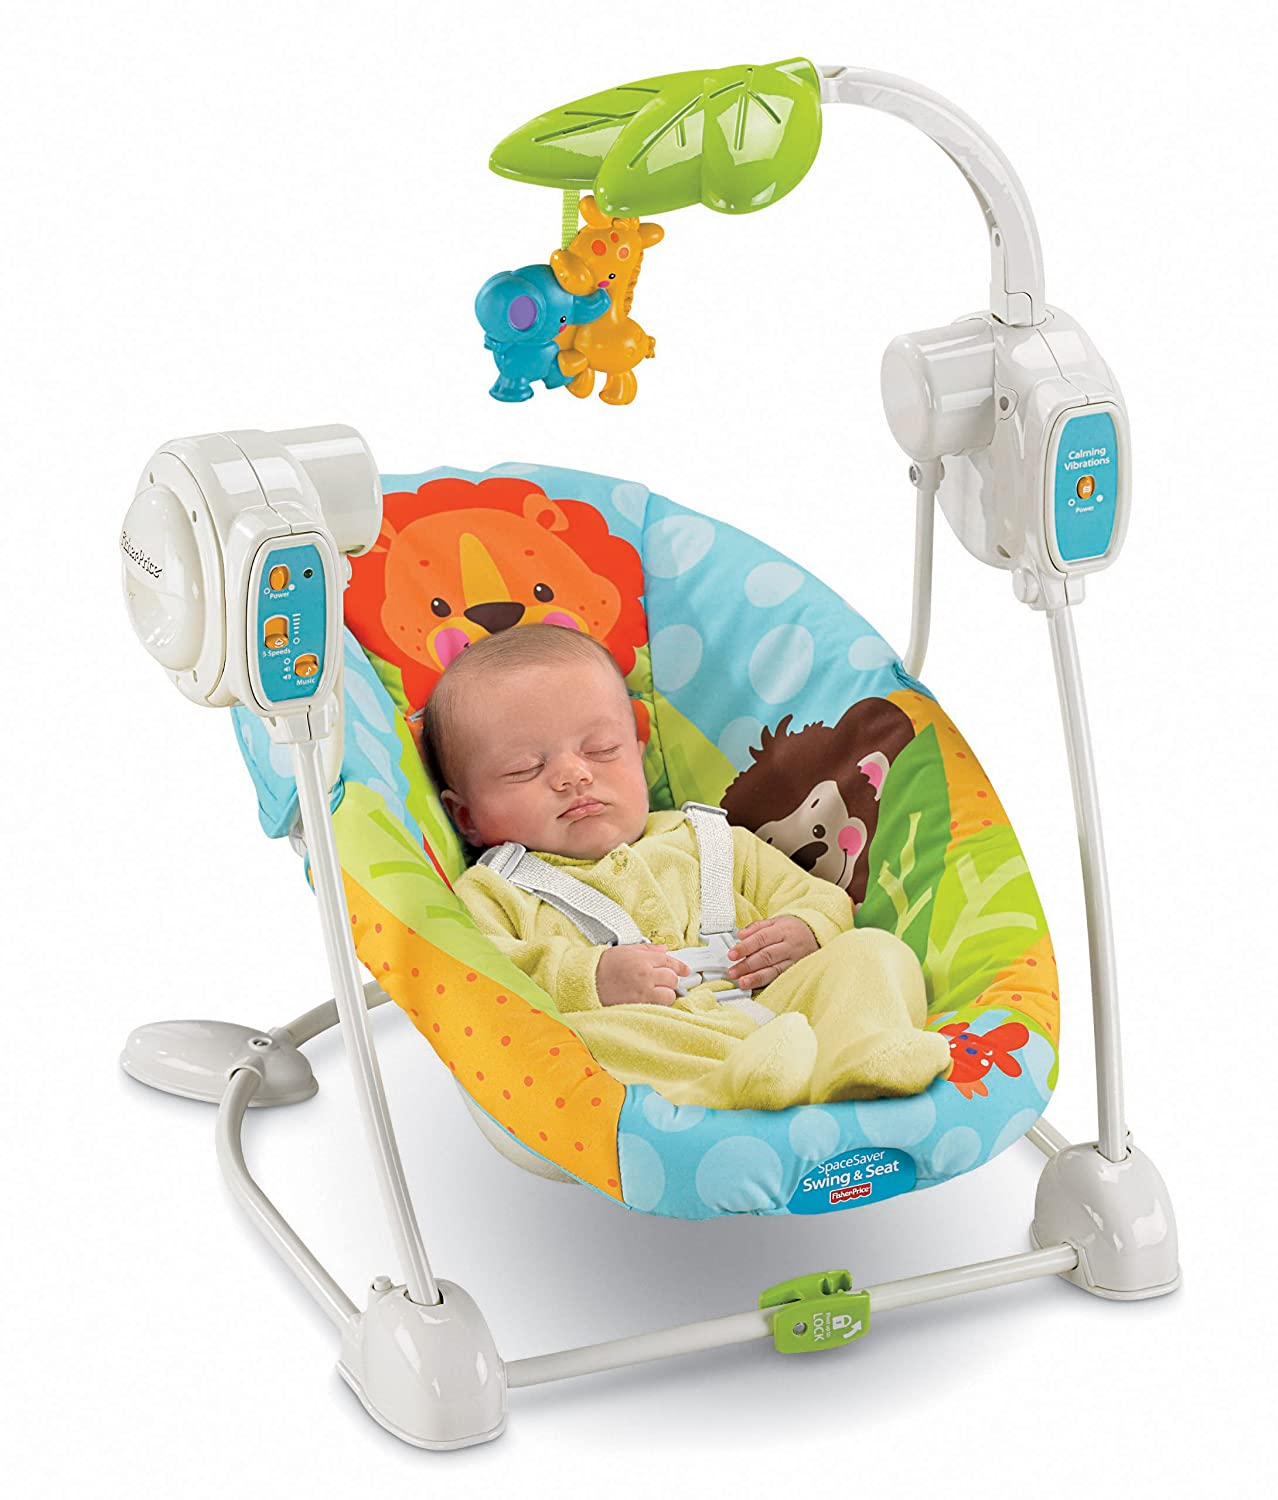 81RE6GP AGL. SL1500 9 of the Best Baby Swing for Small Spaces (Apartments) 2021